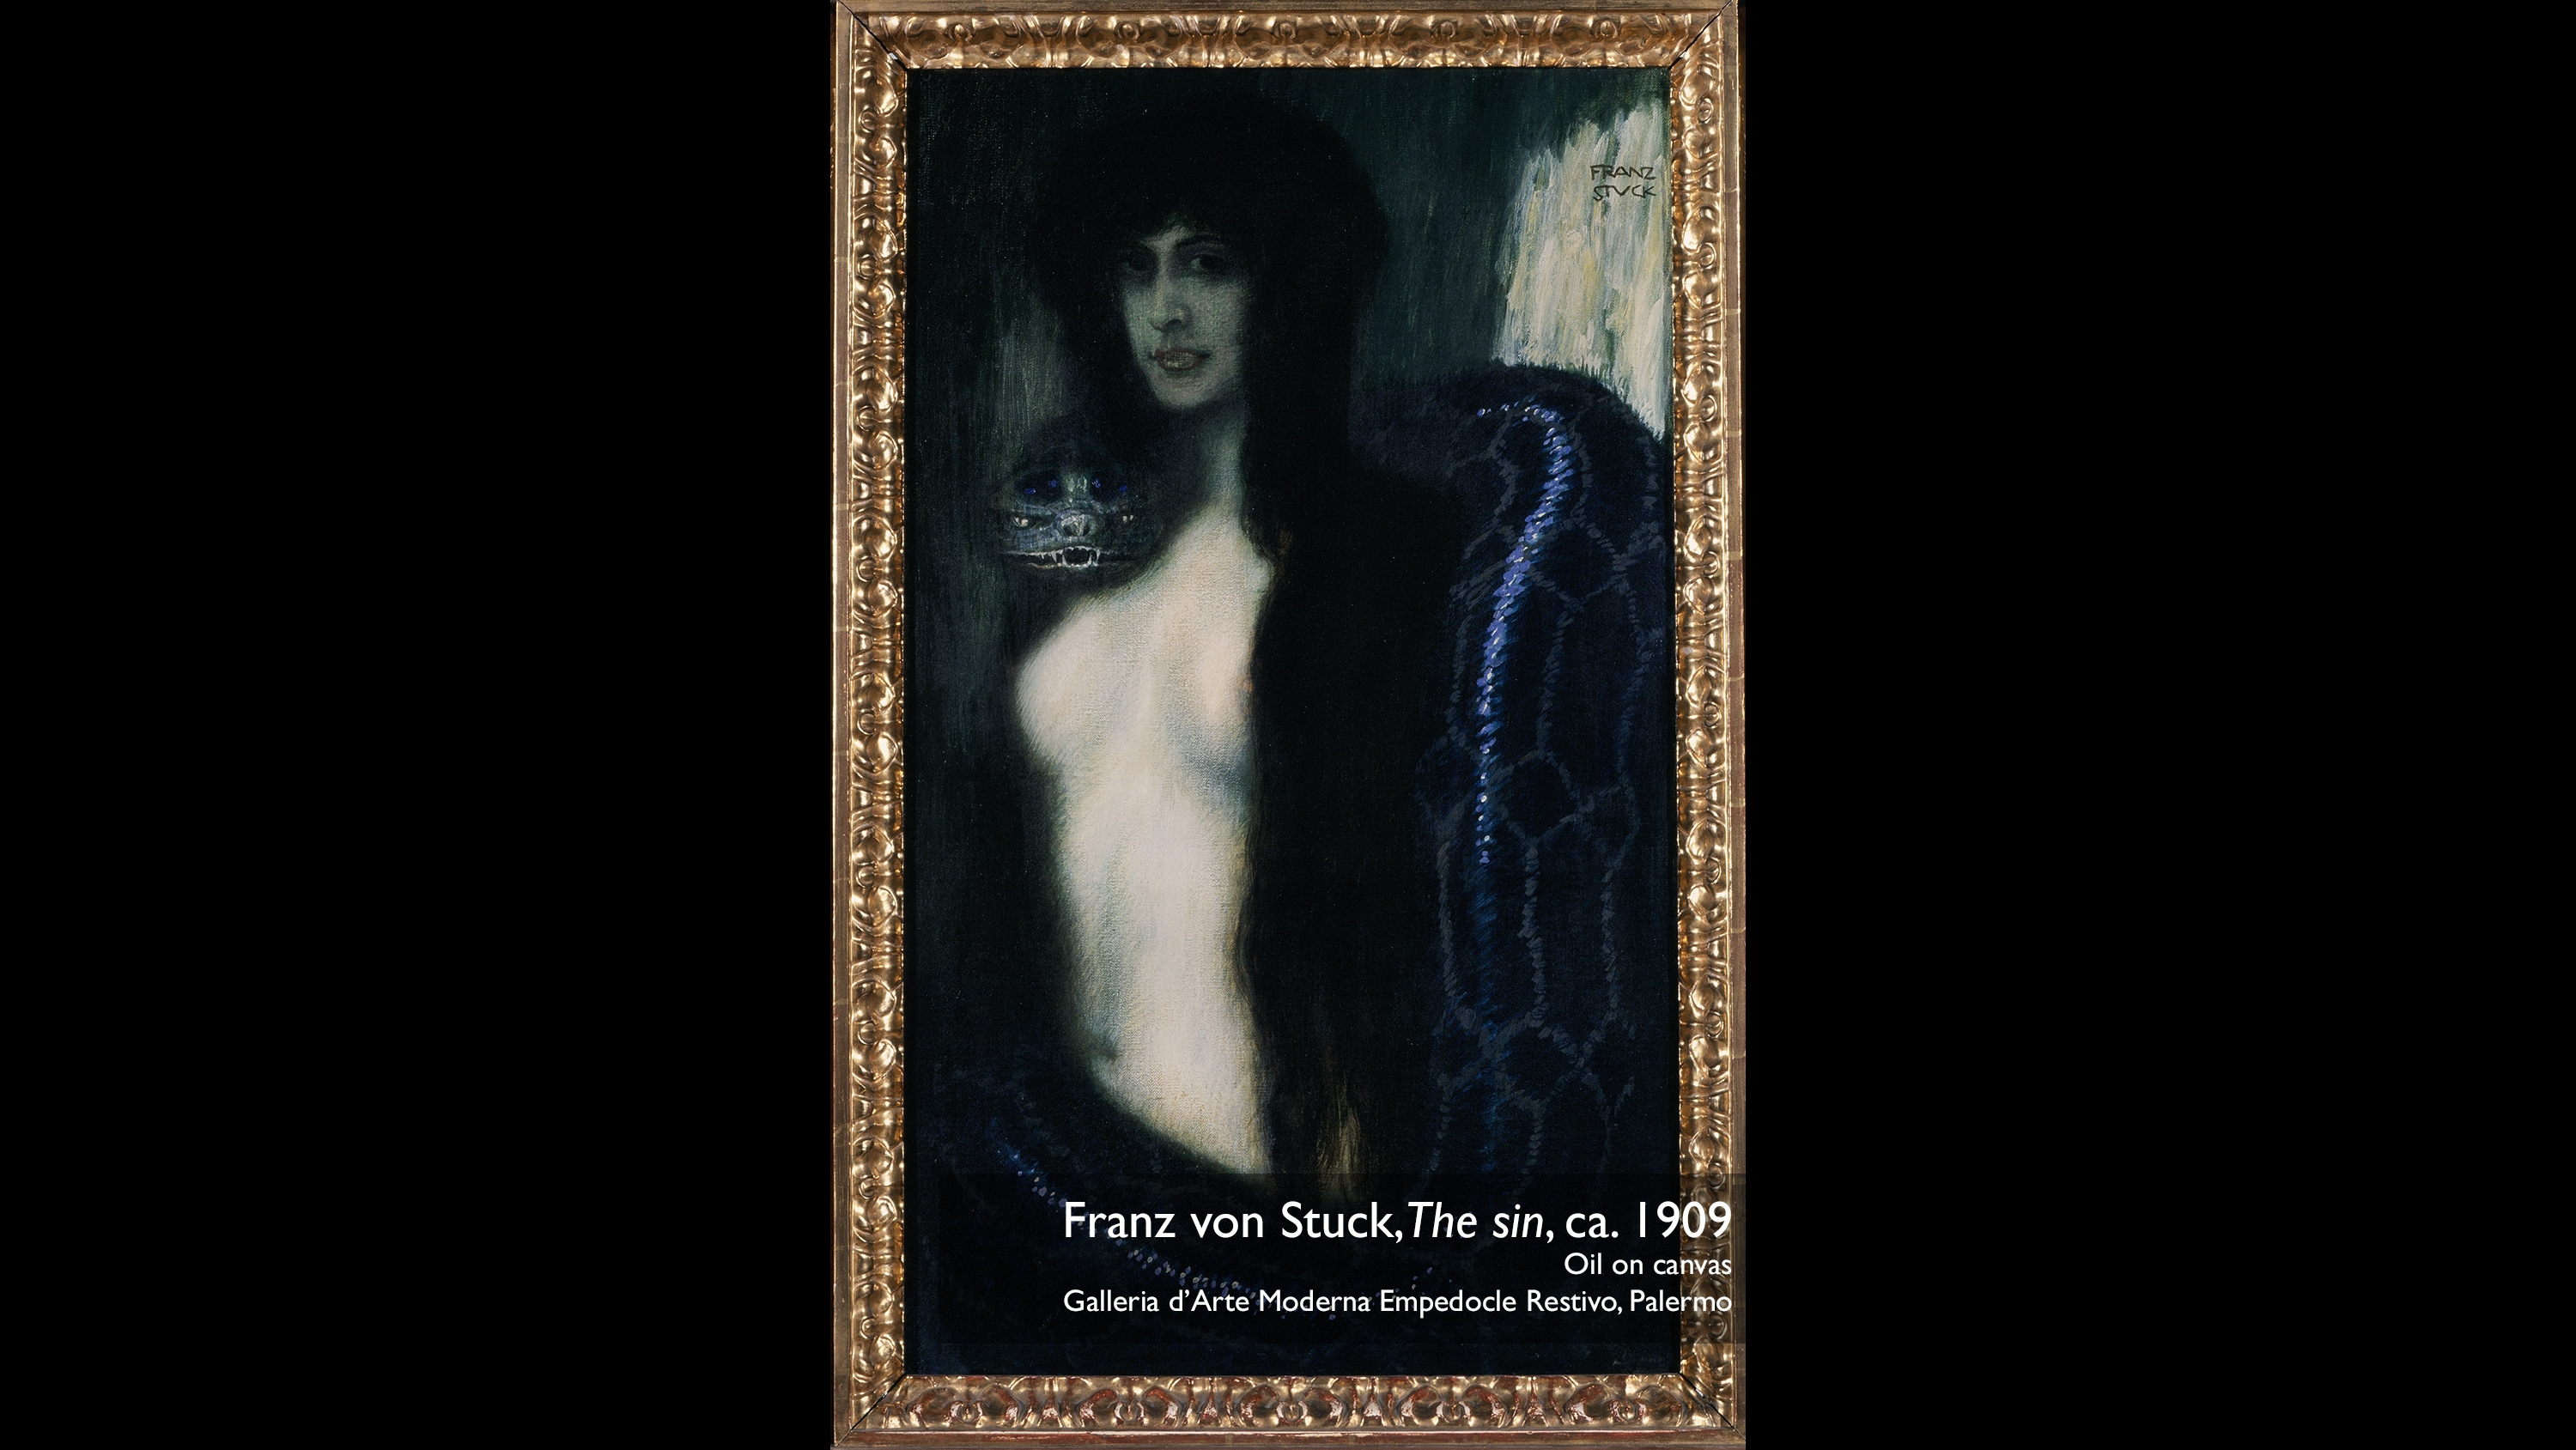 Franz von Stuck,The sin, ca. 1909. Oil on canvas. Galleria d'Arte Moderna Empedocle Restivo, Palermo